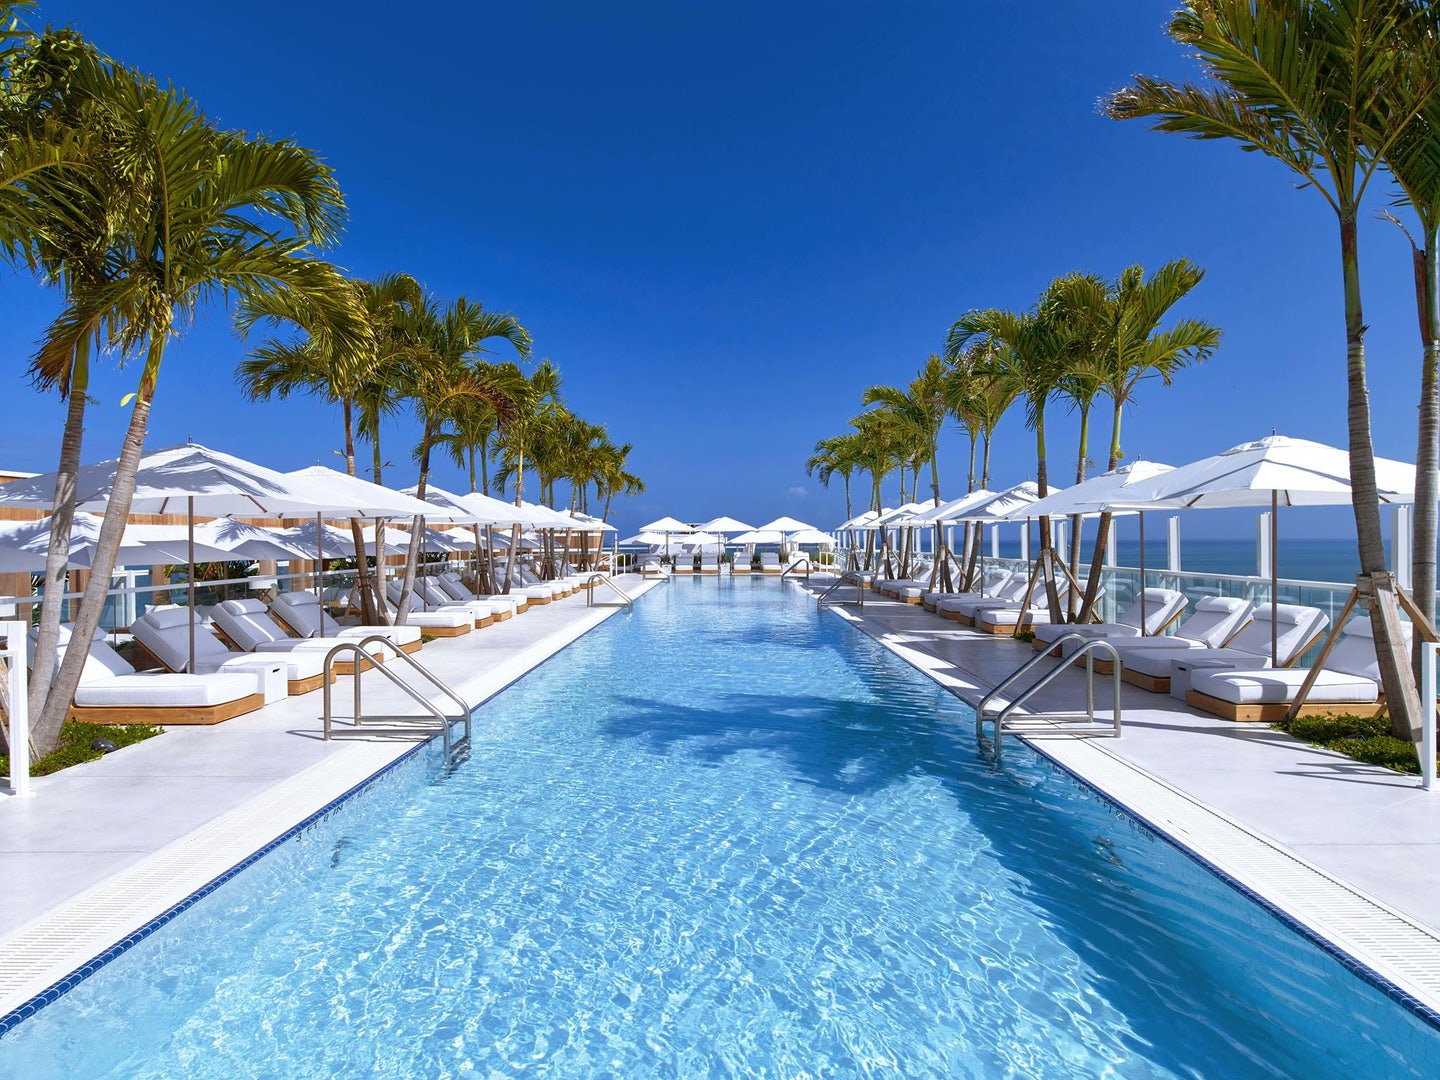 swimming pool of the 1 Hotel South Beach Miami